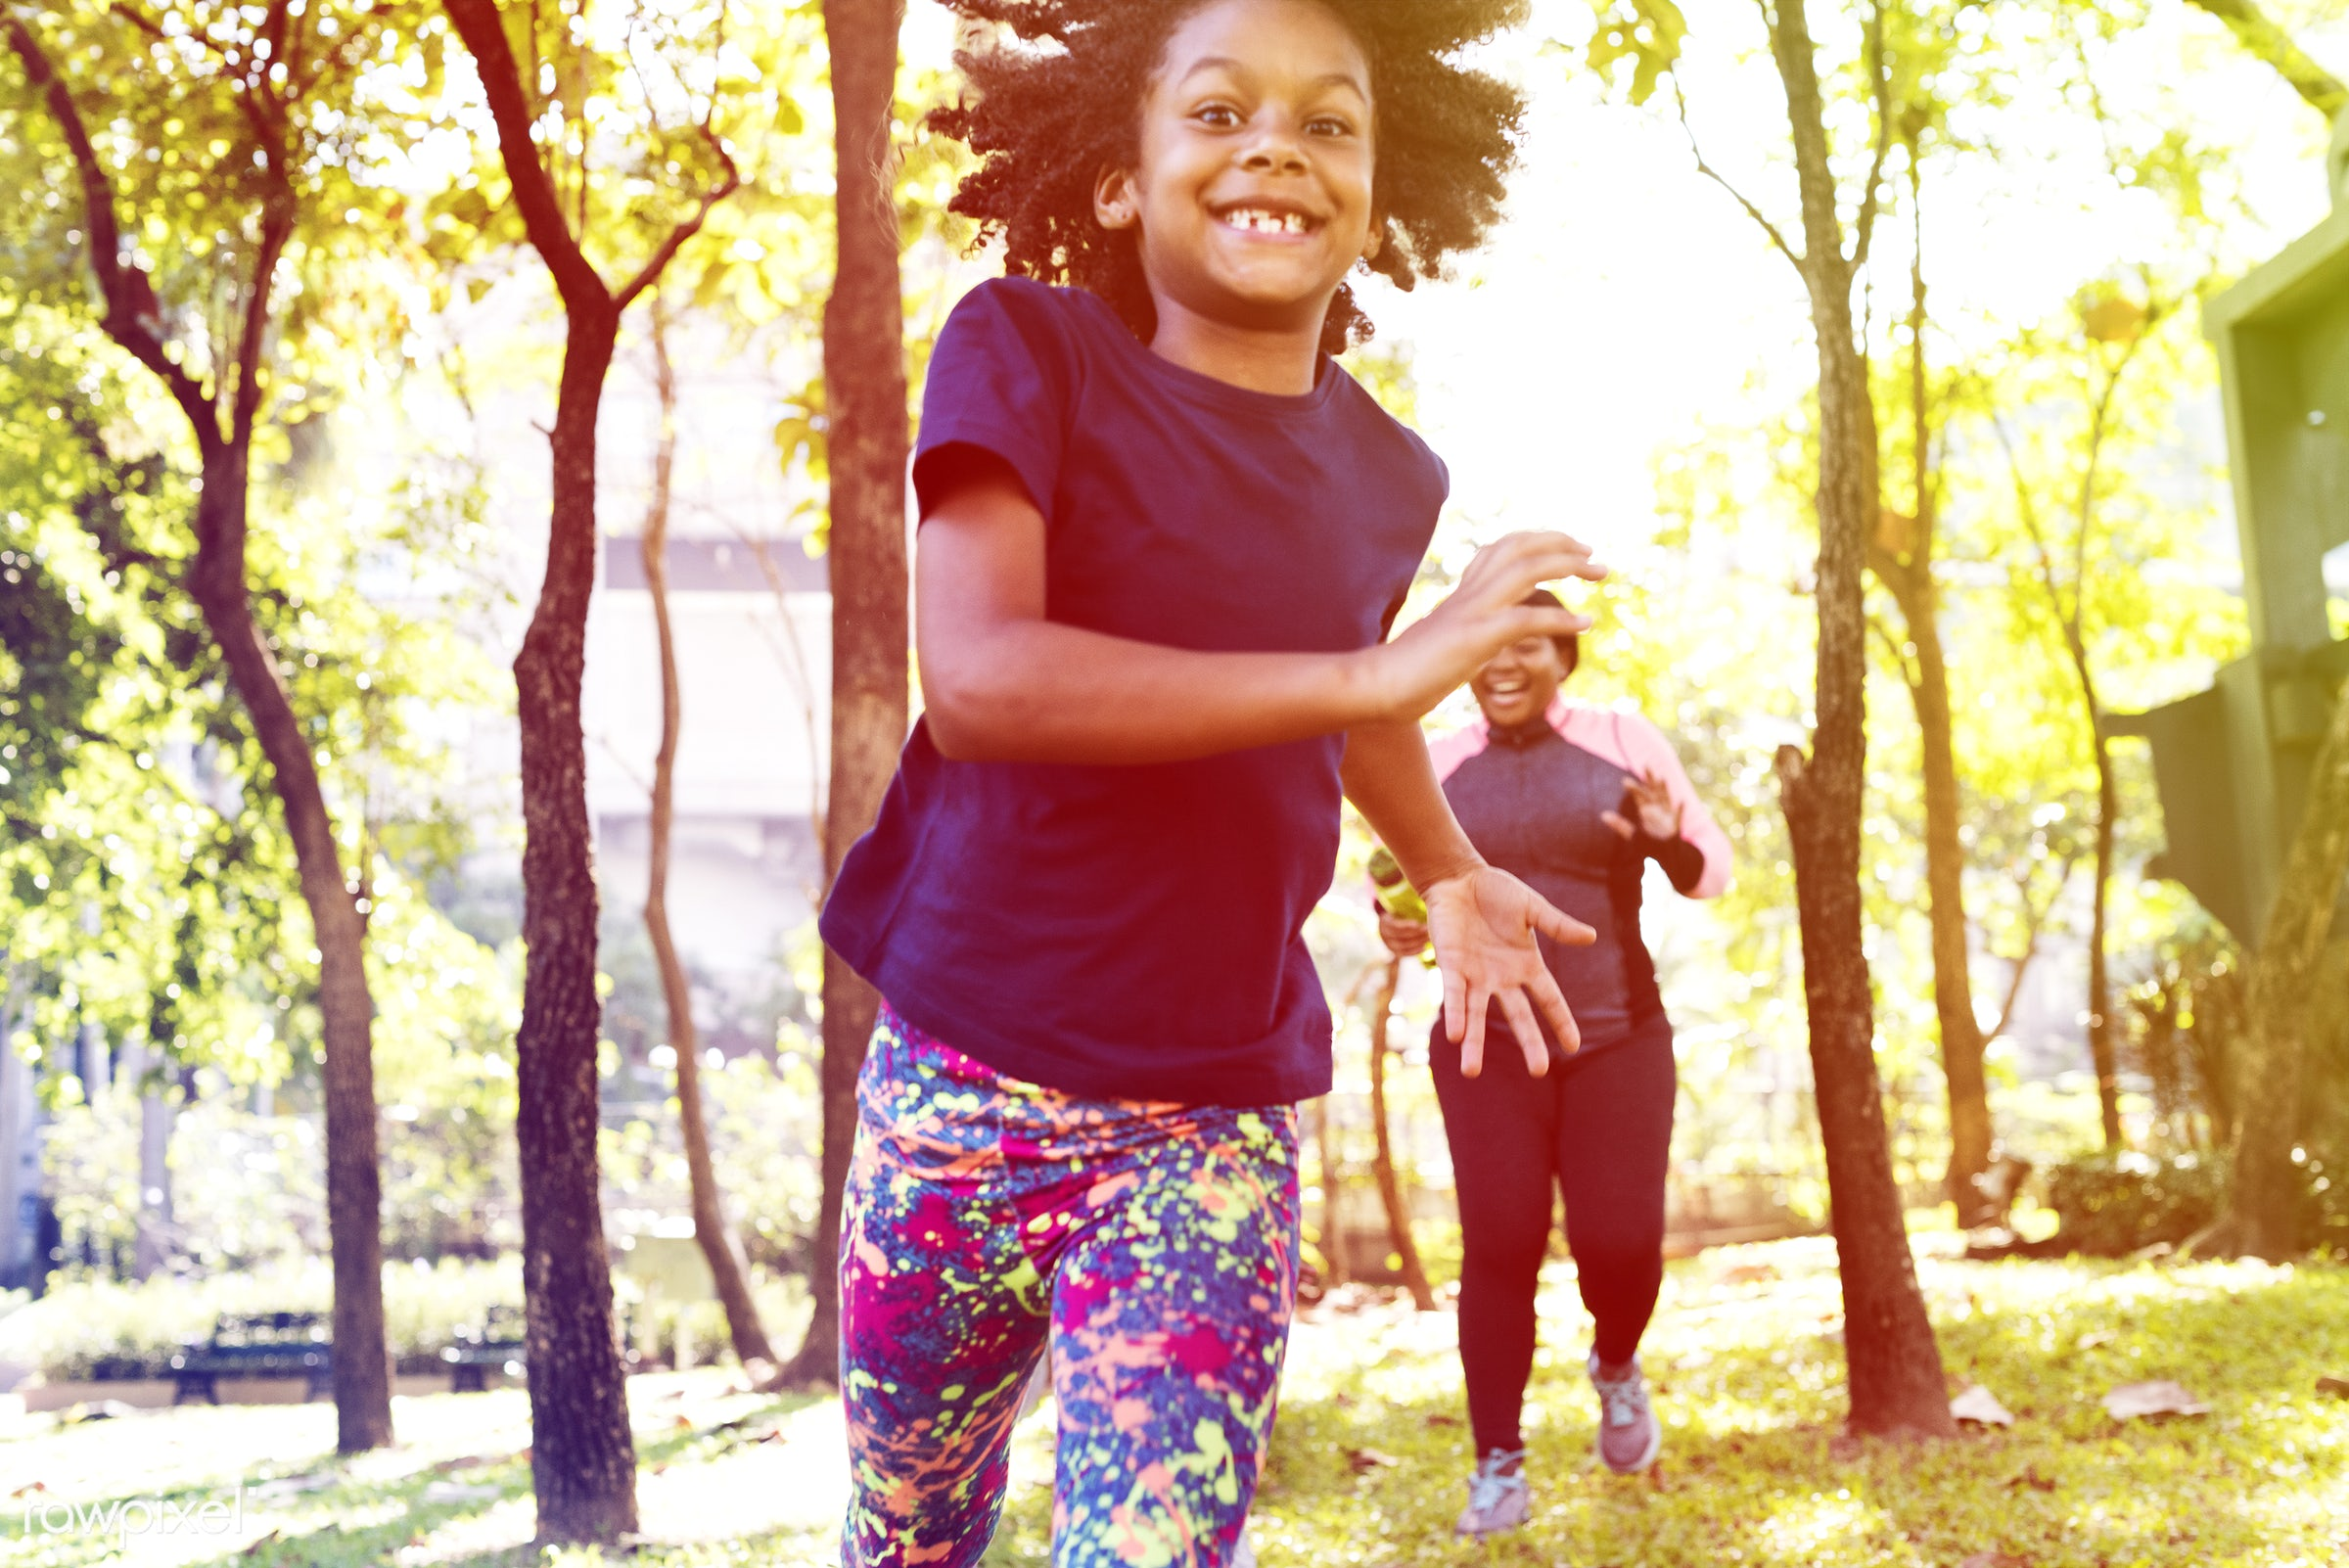 parents, african, land, daughter, exercise, recreation, running, related, love, nature, green area, family, wellness,...